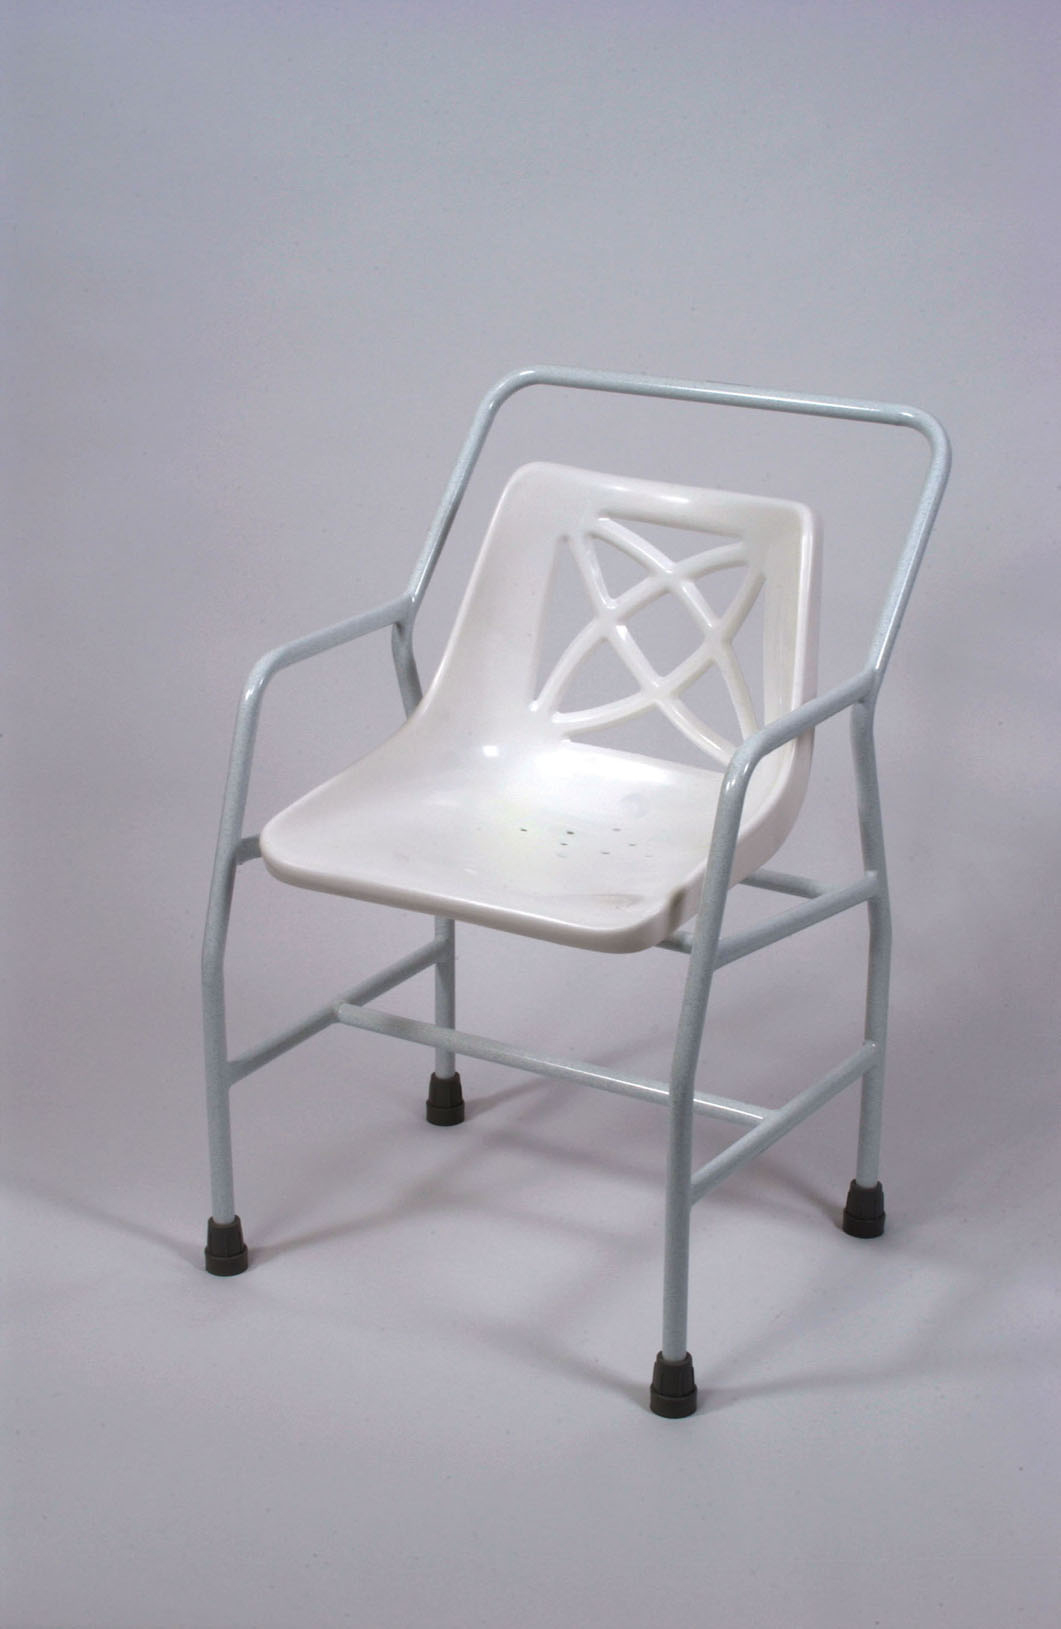 Shower Chair Stationary